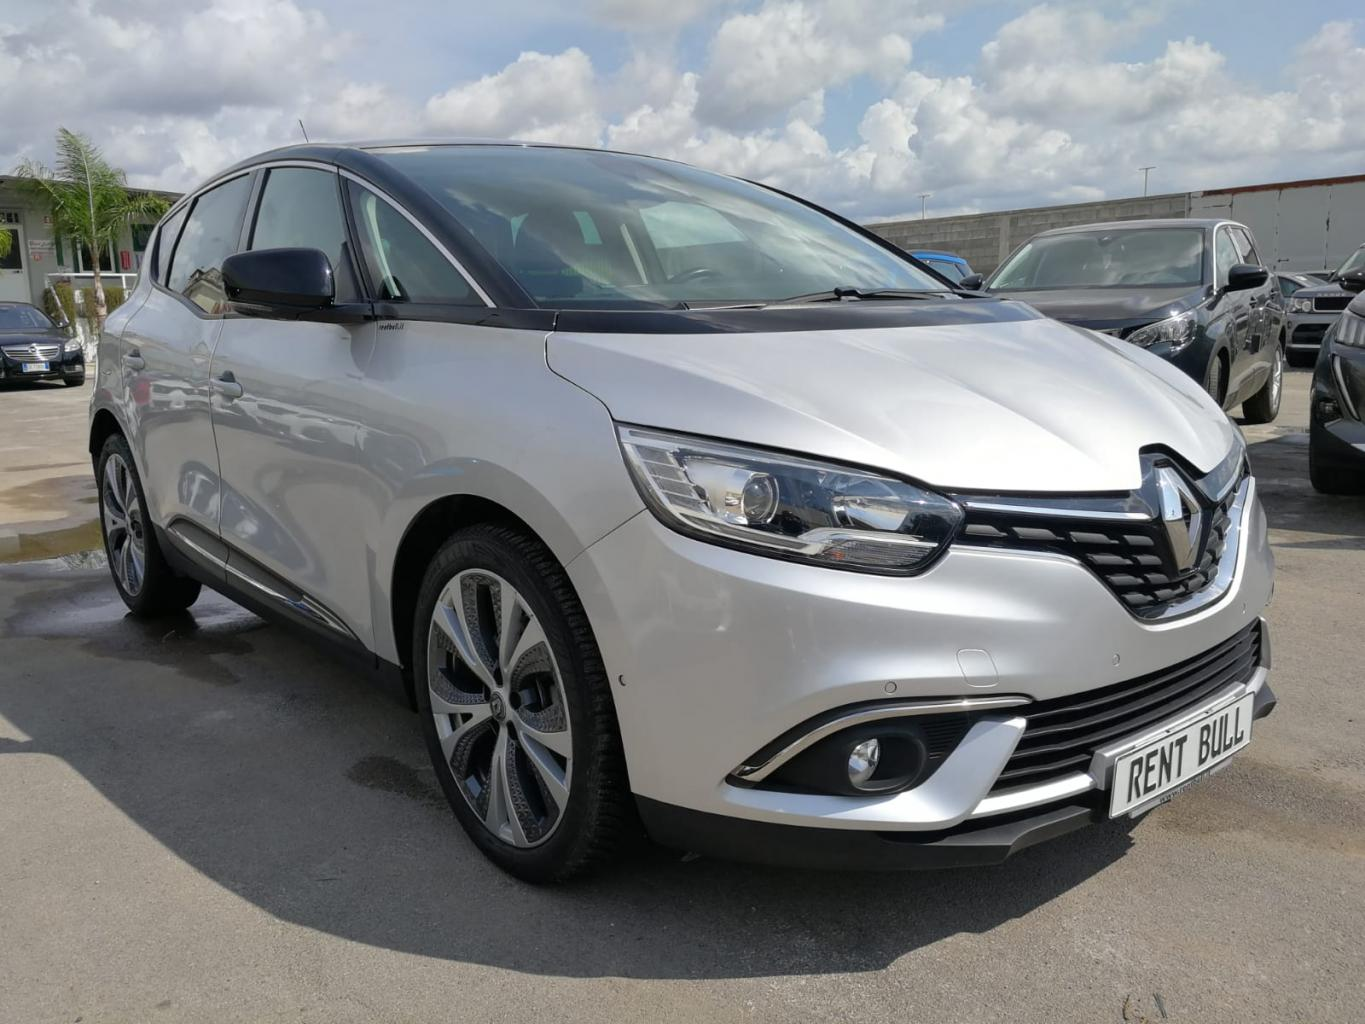 RENAULT NUOVO SCENIC DCI 8V 110 CV LIMITED ENERGY